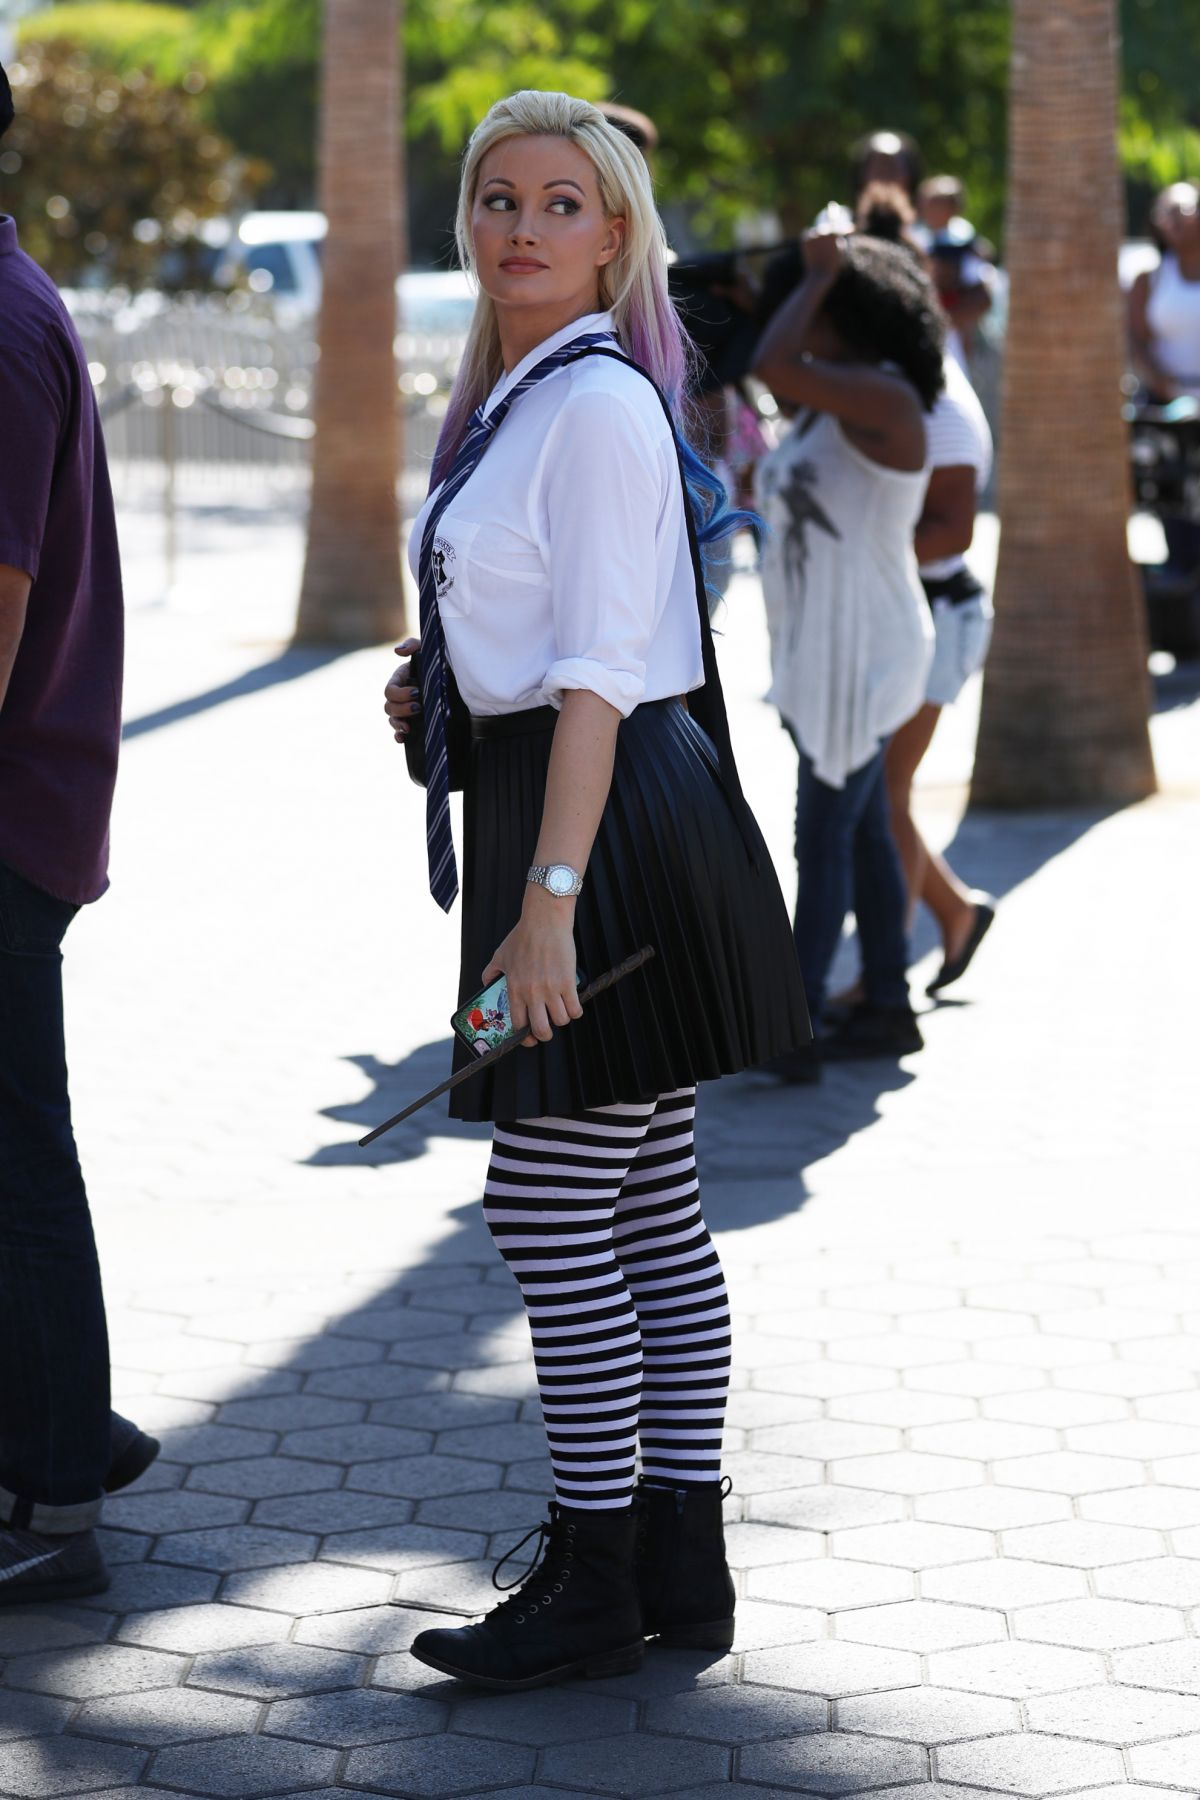 Holly Madison Wears a sexy Harry Potter outfit to Universal Studios Hollywood, California